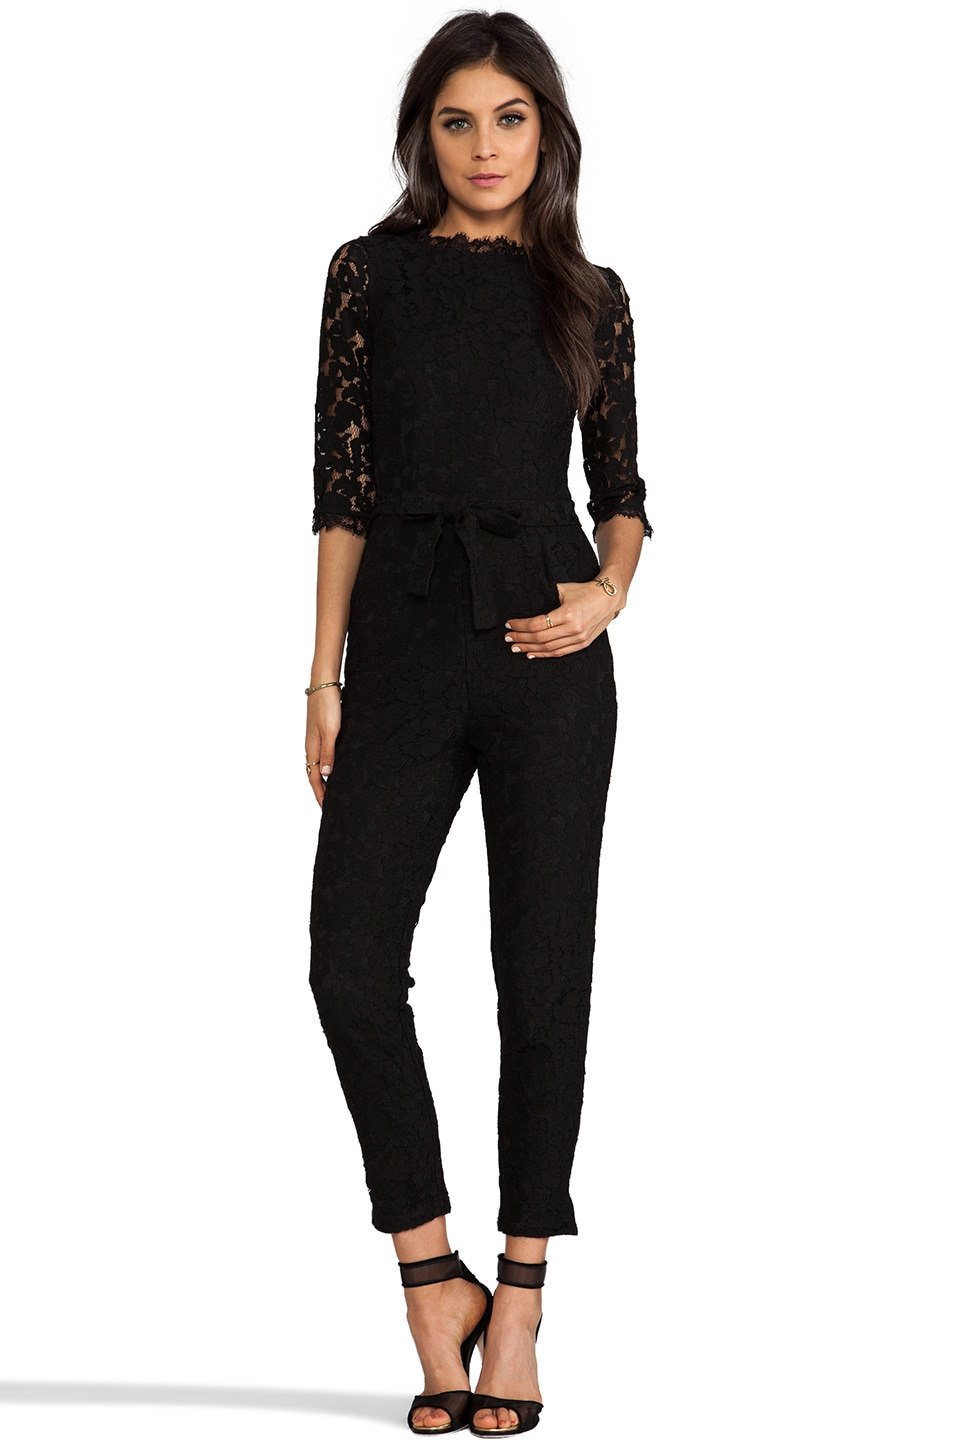 Alice by Temperley Eros Jumpsuit in Black